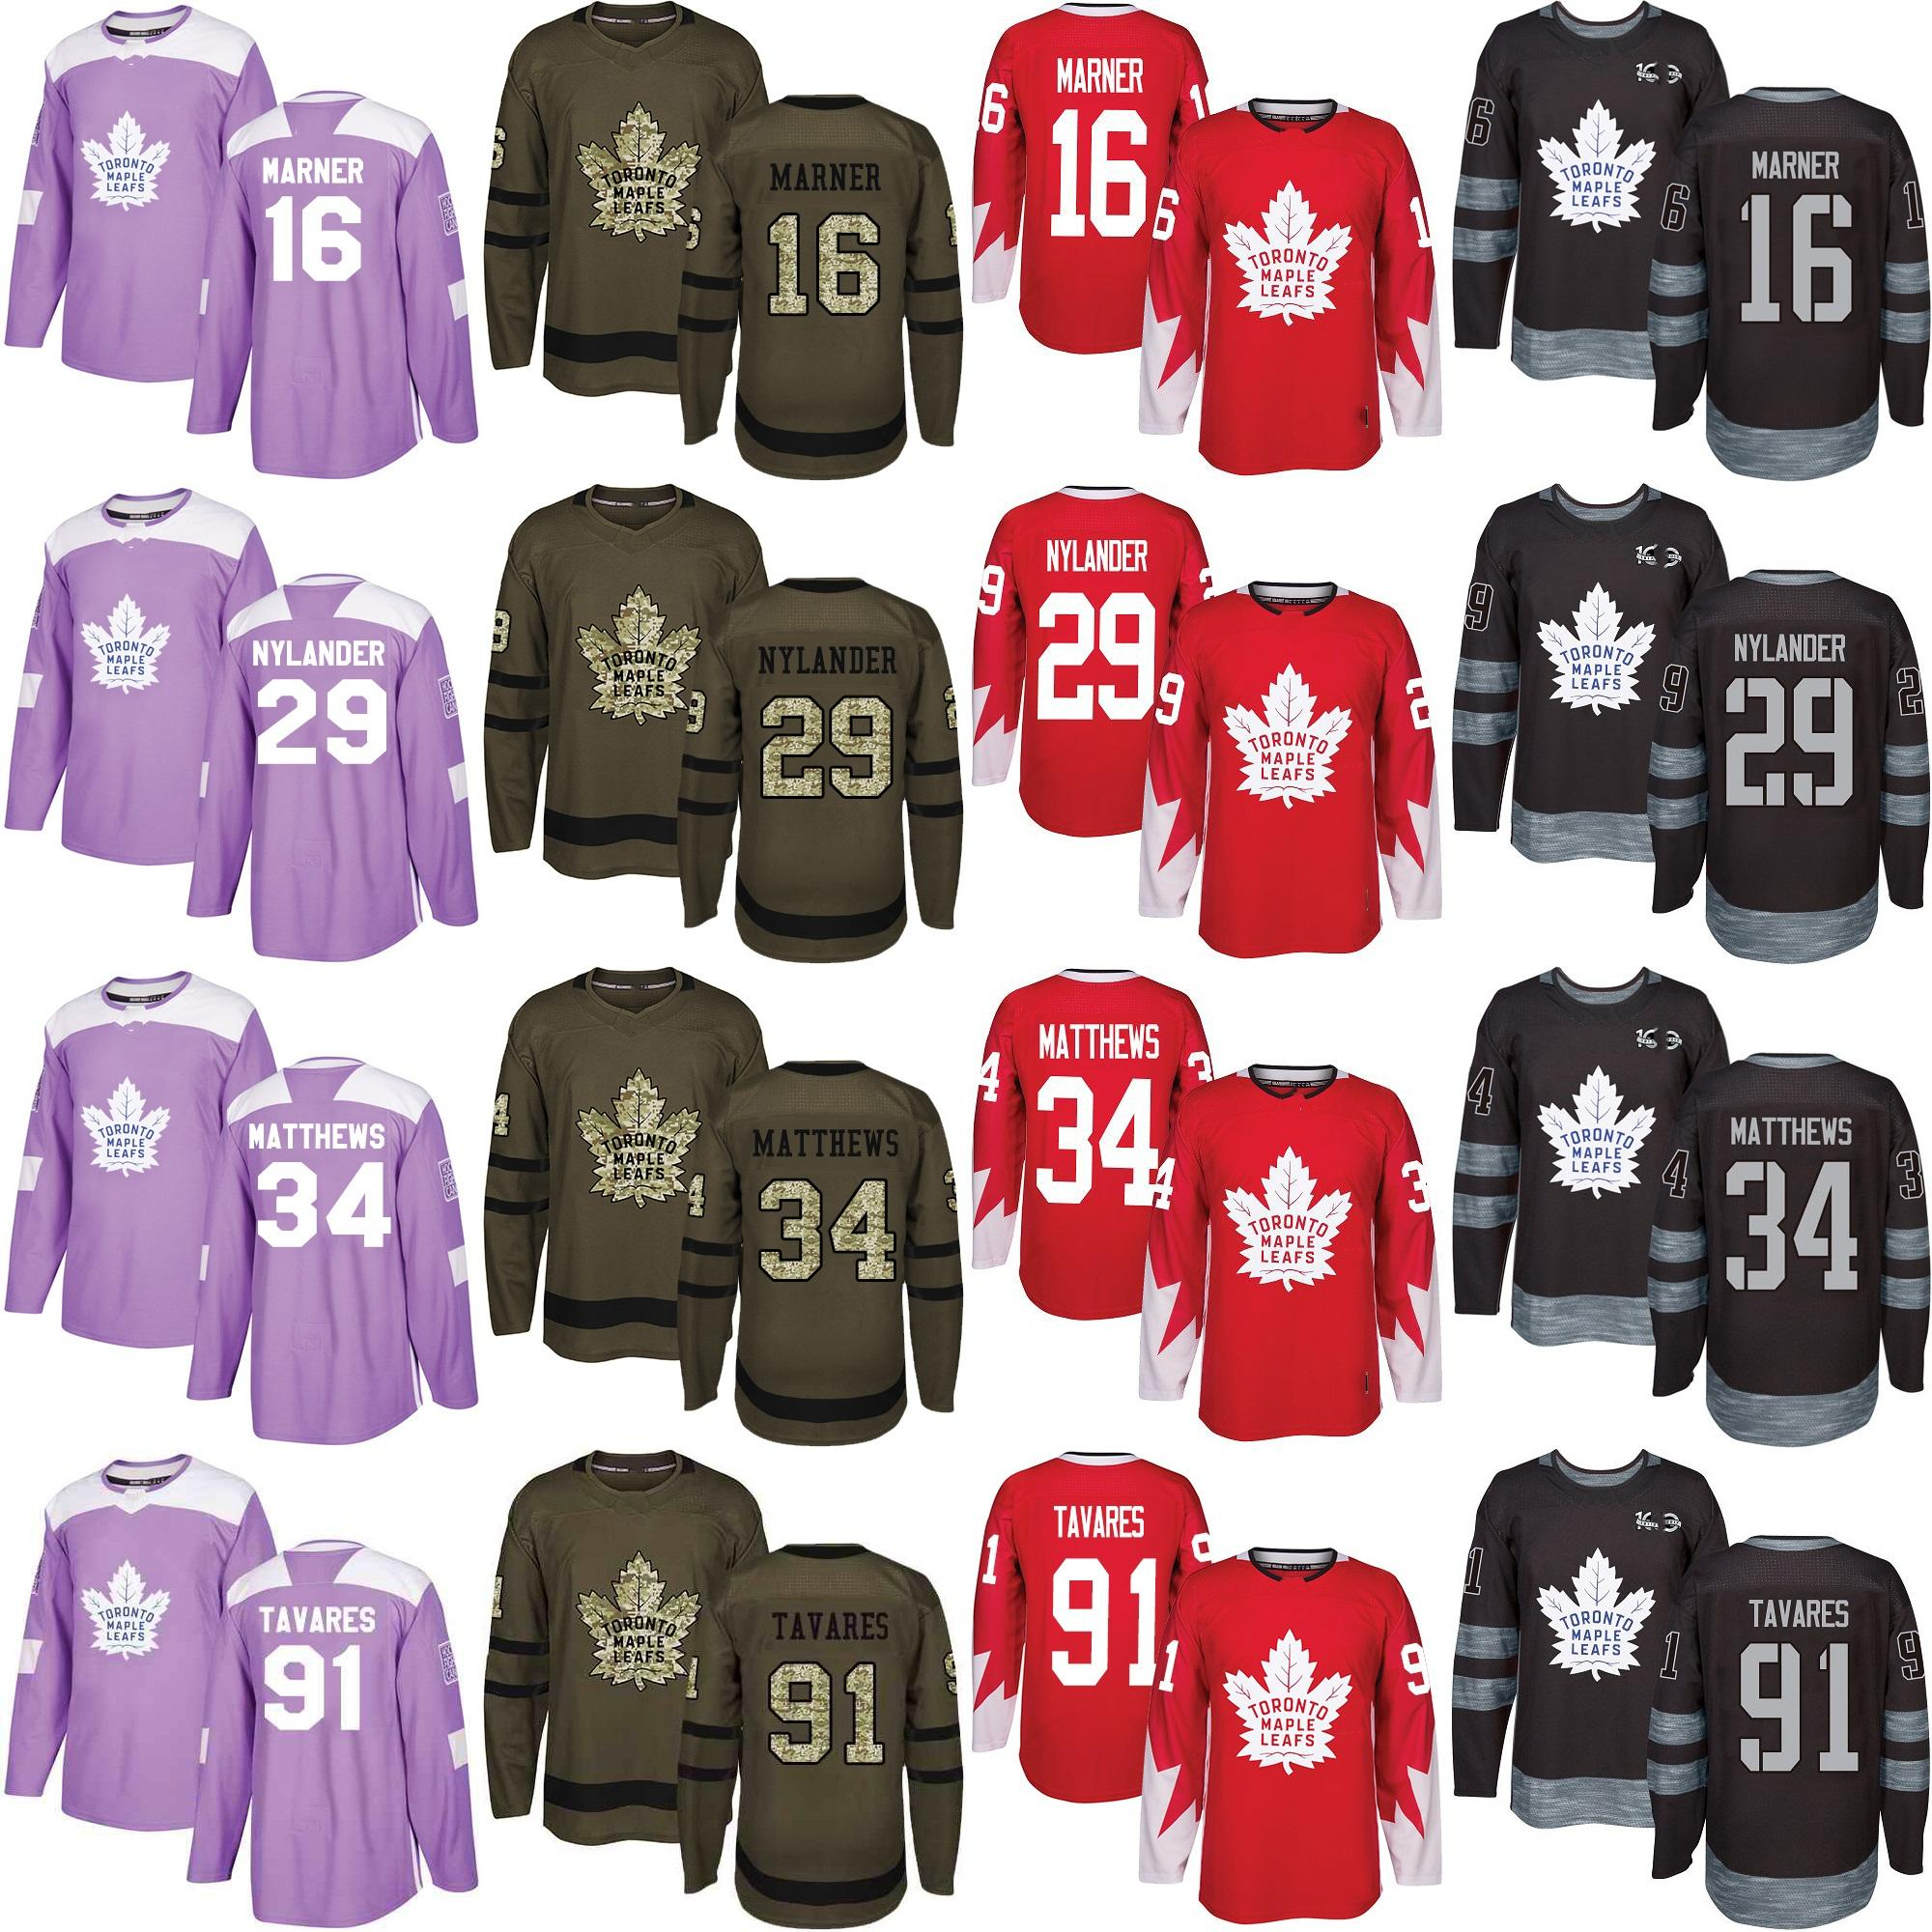 free shipping ccddd d2952 91 Tavares Blank 29 William Nylander 16 Mitch Marner 34 Matthews Toronto  Maple Leafs Hockey Jersey Salute to Service Fights Cancer Red